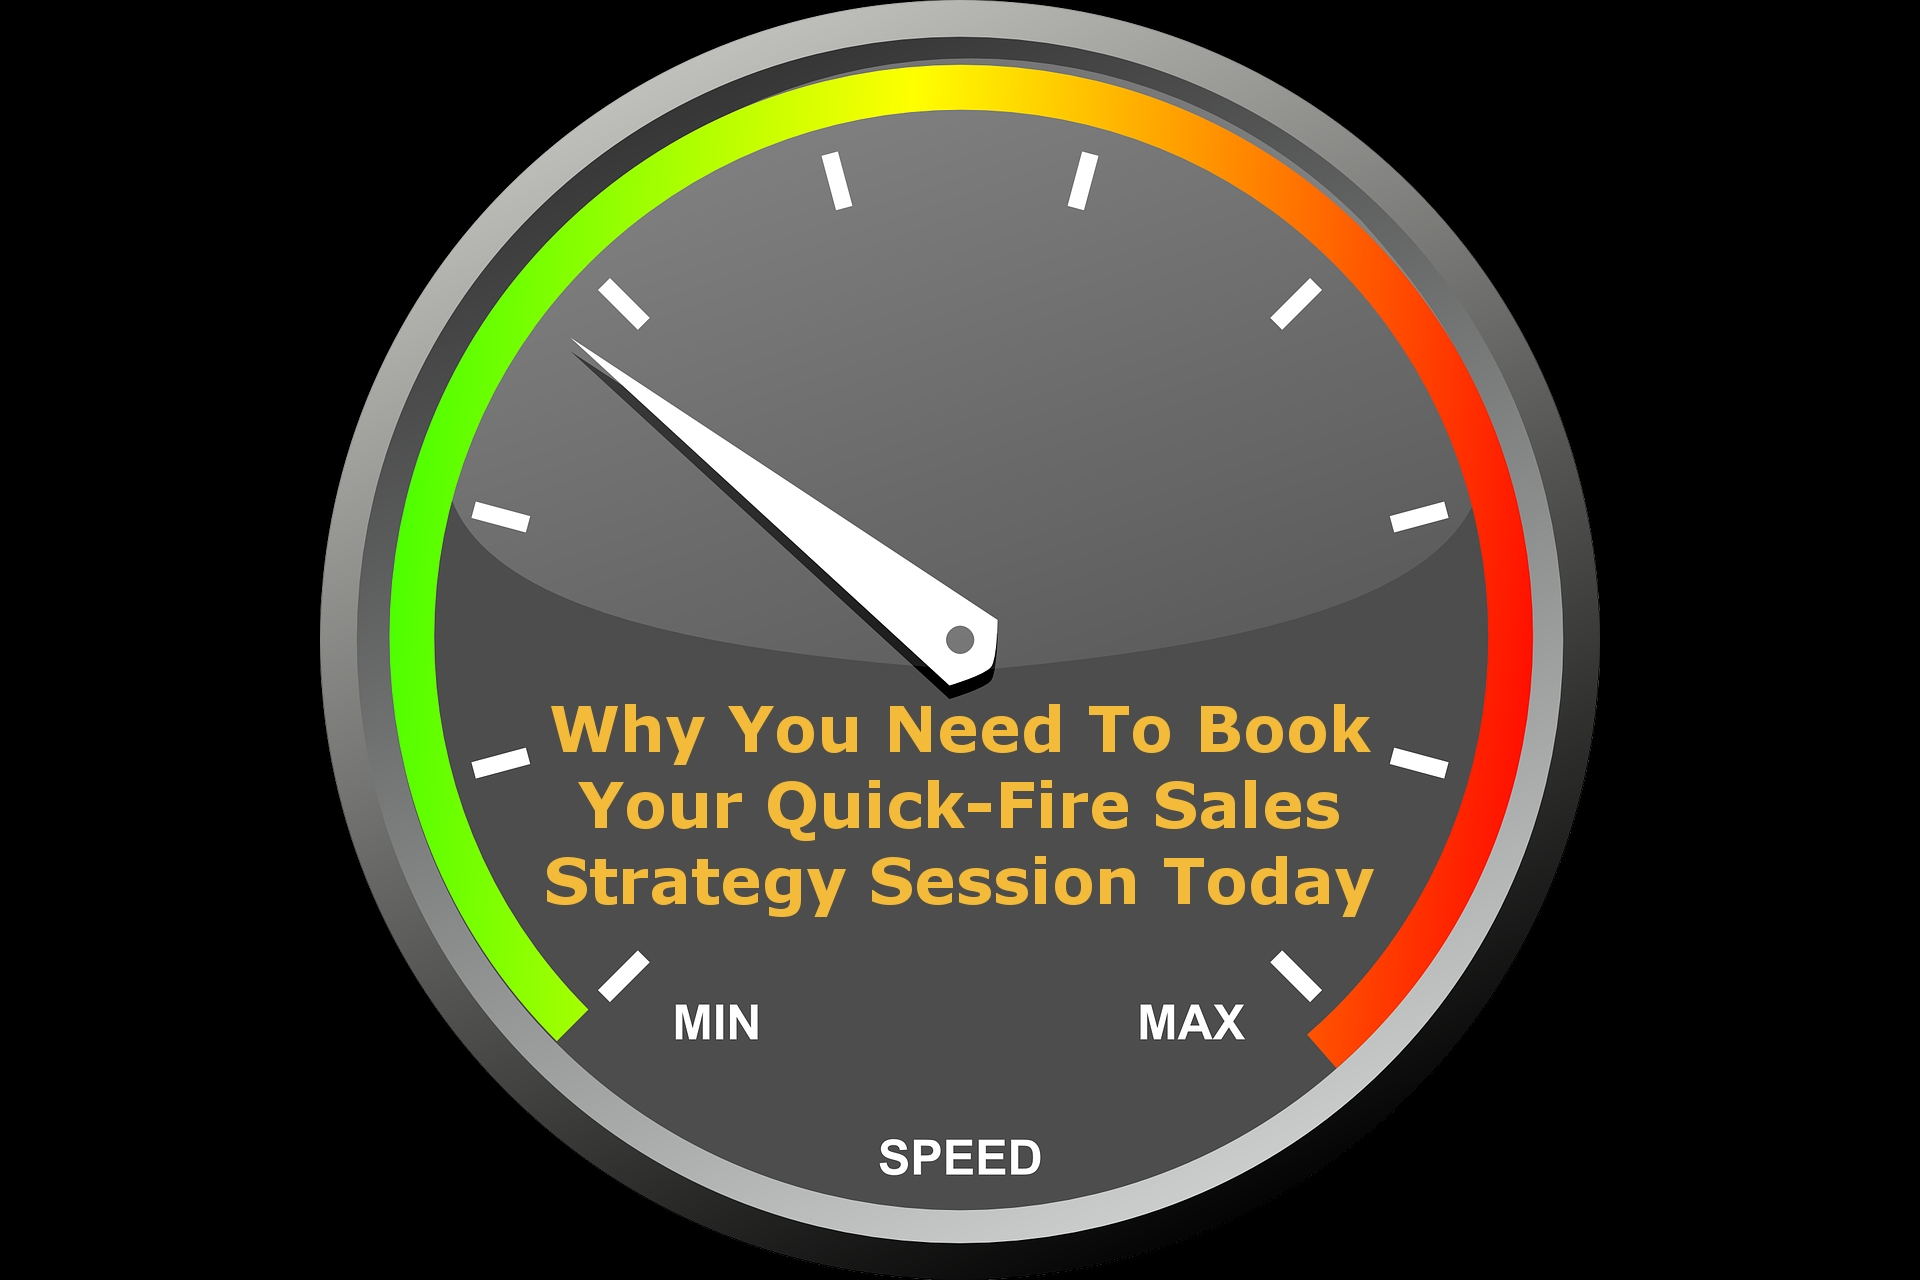 Why You Need To Book Your Quick-Fire Sales Strategy Now